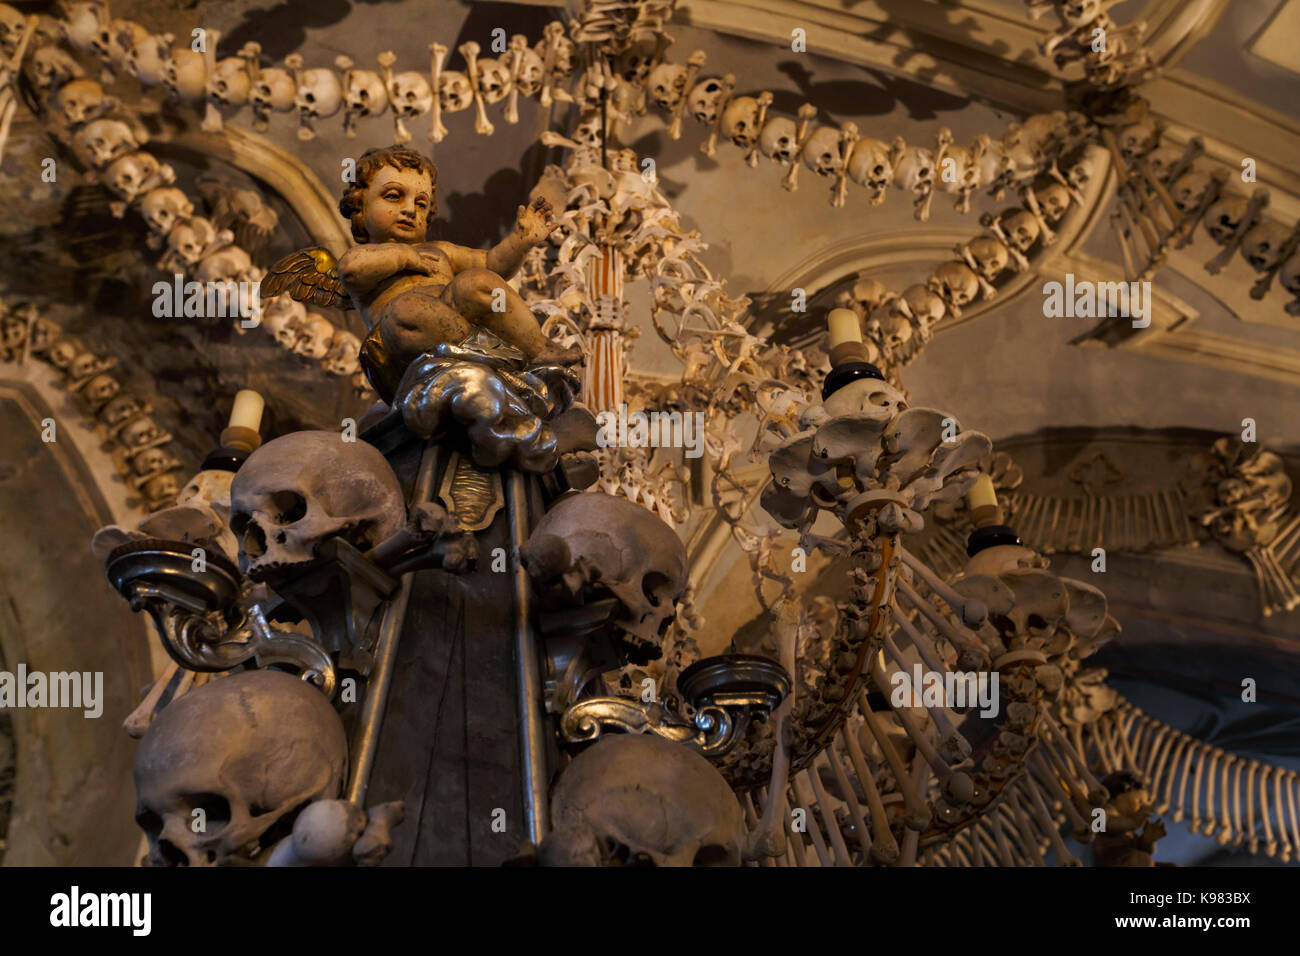 Bone decoration of Sedlec ossuary in Kutna Hora. - Stock Image